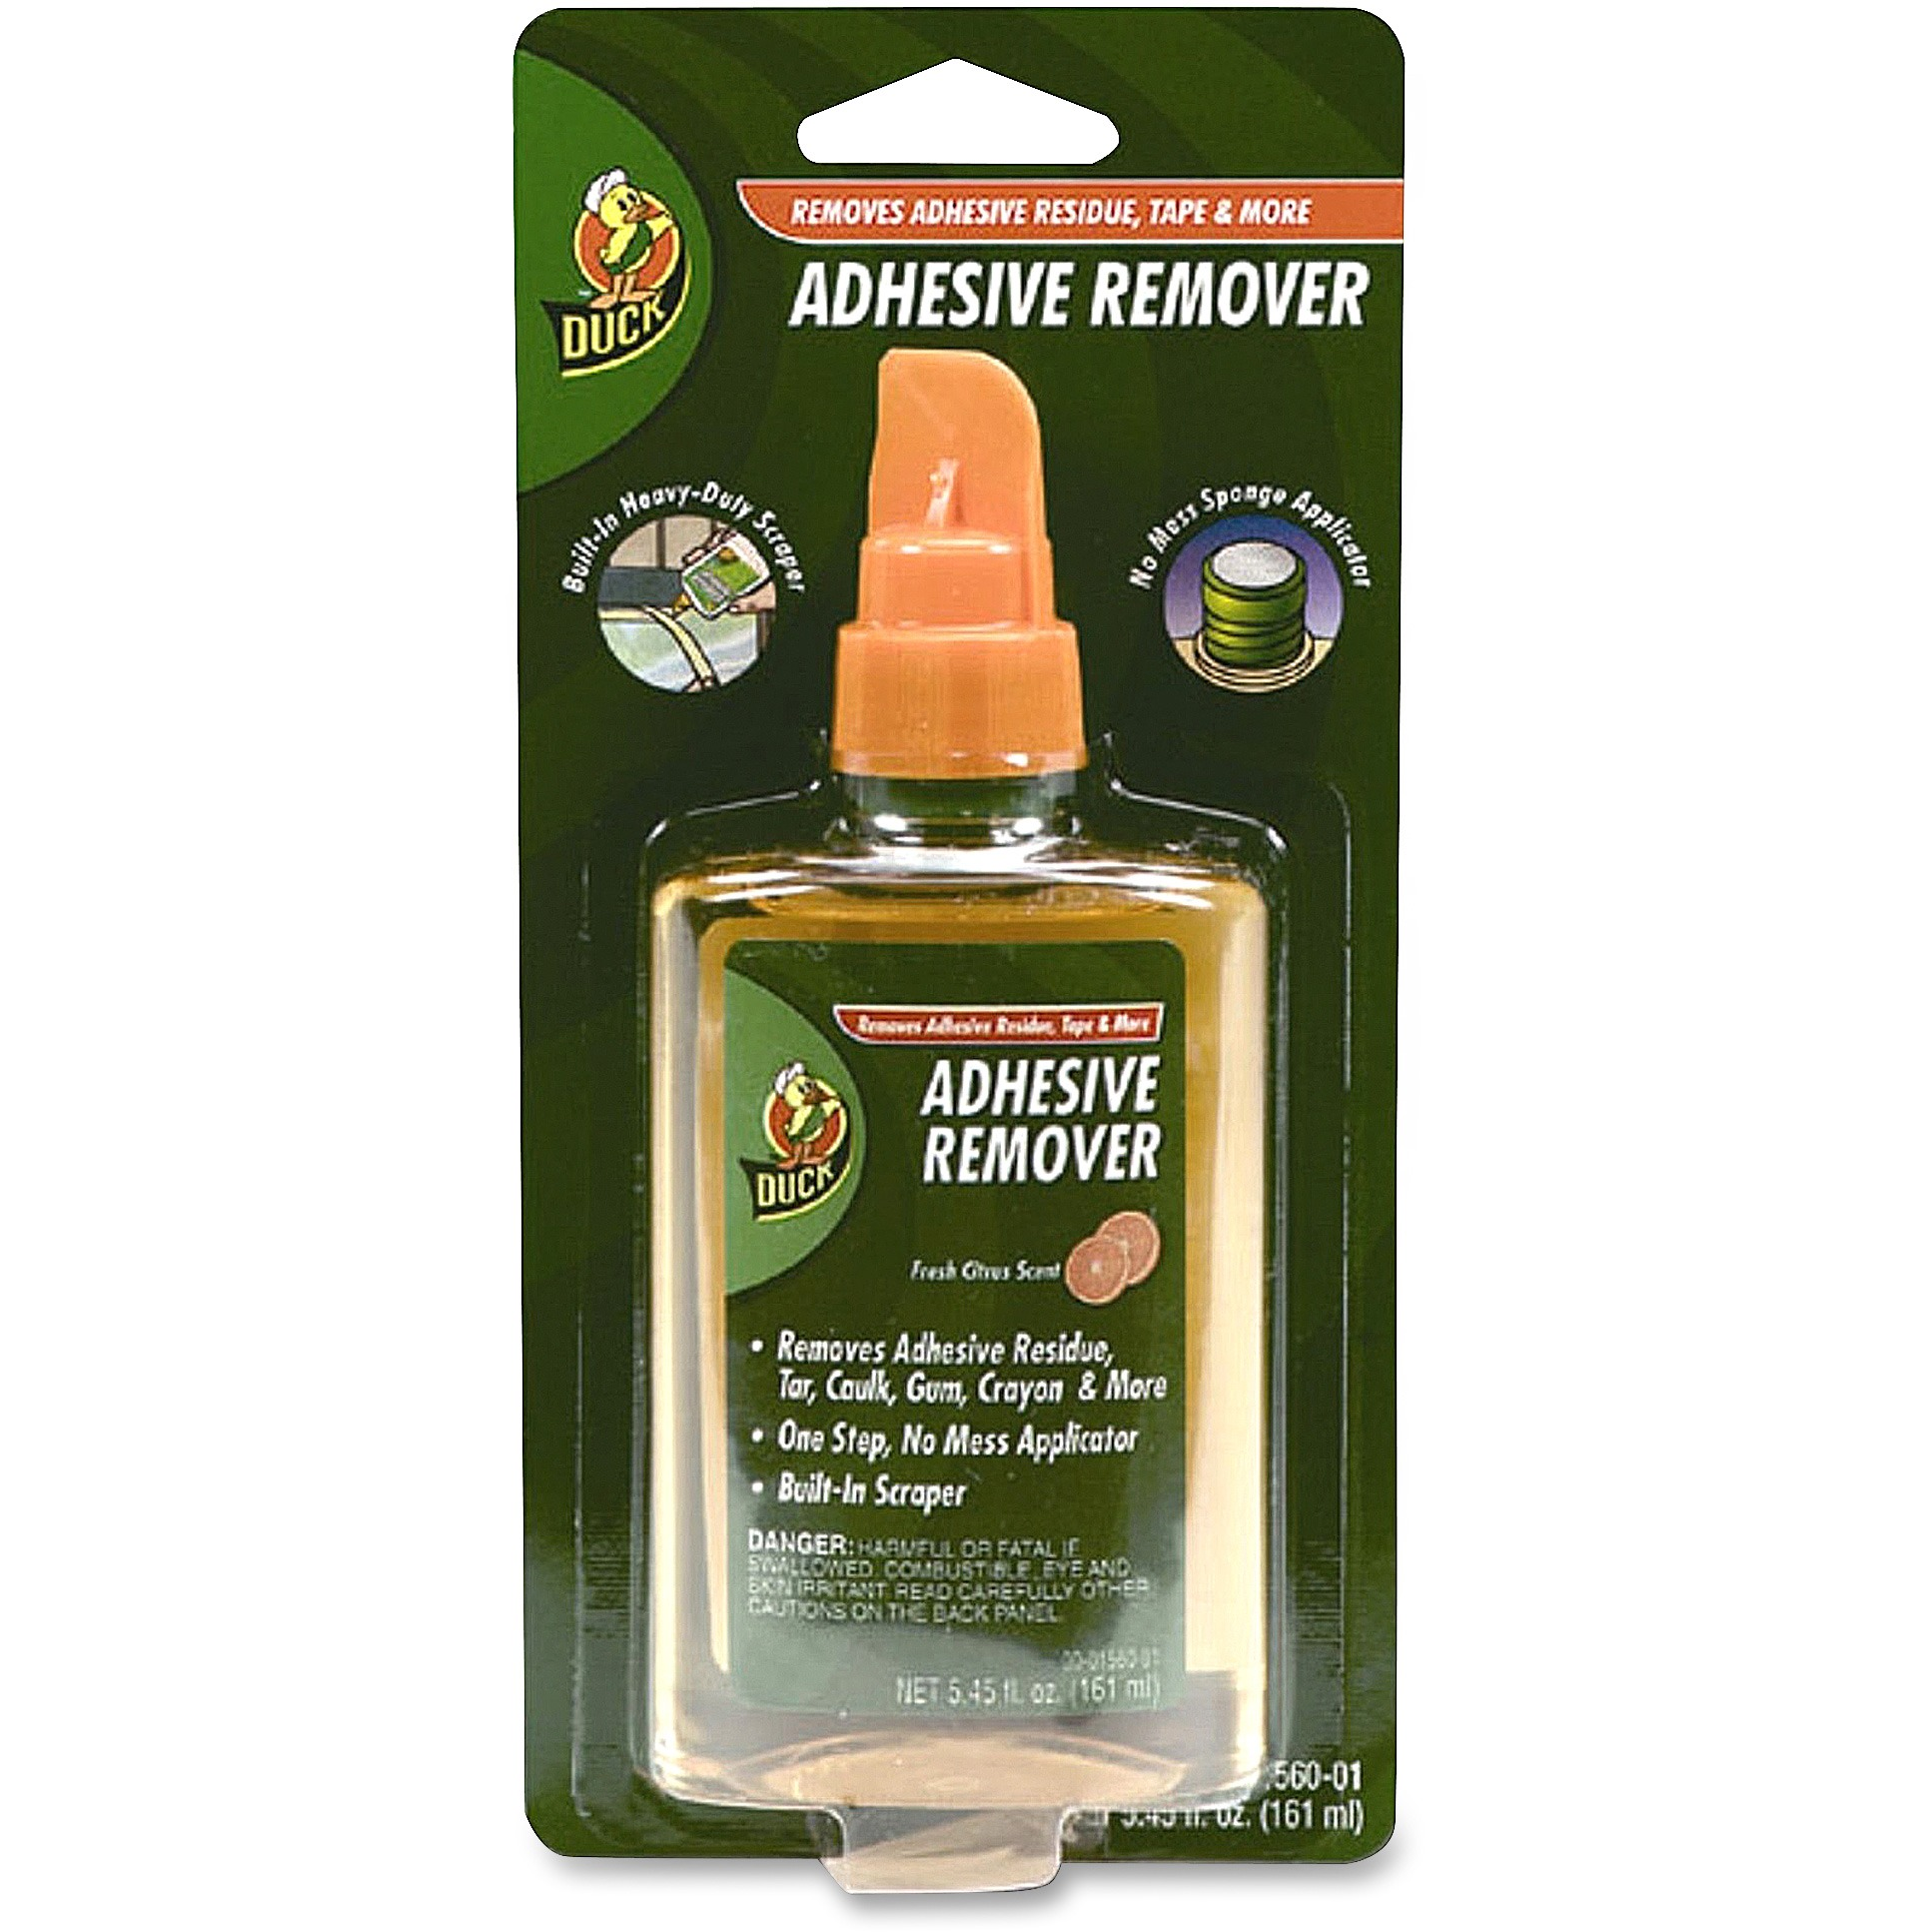 Duck Brand, DUC000156001, Brand Adhesive Remover, 1 Each